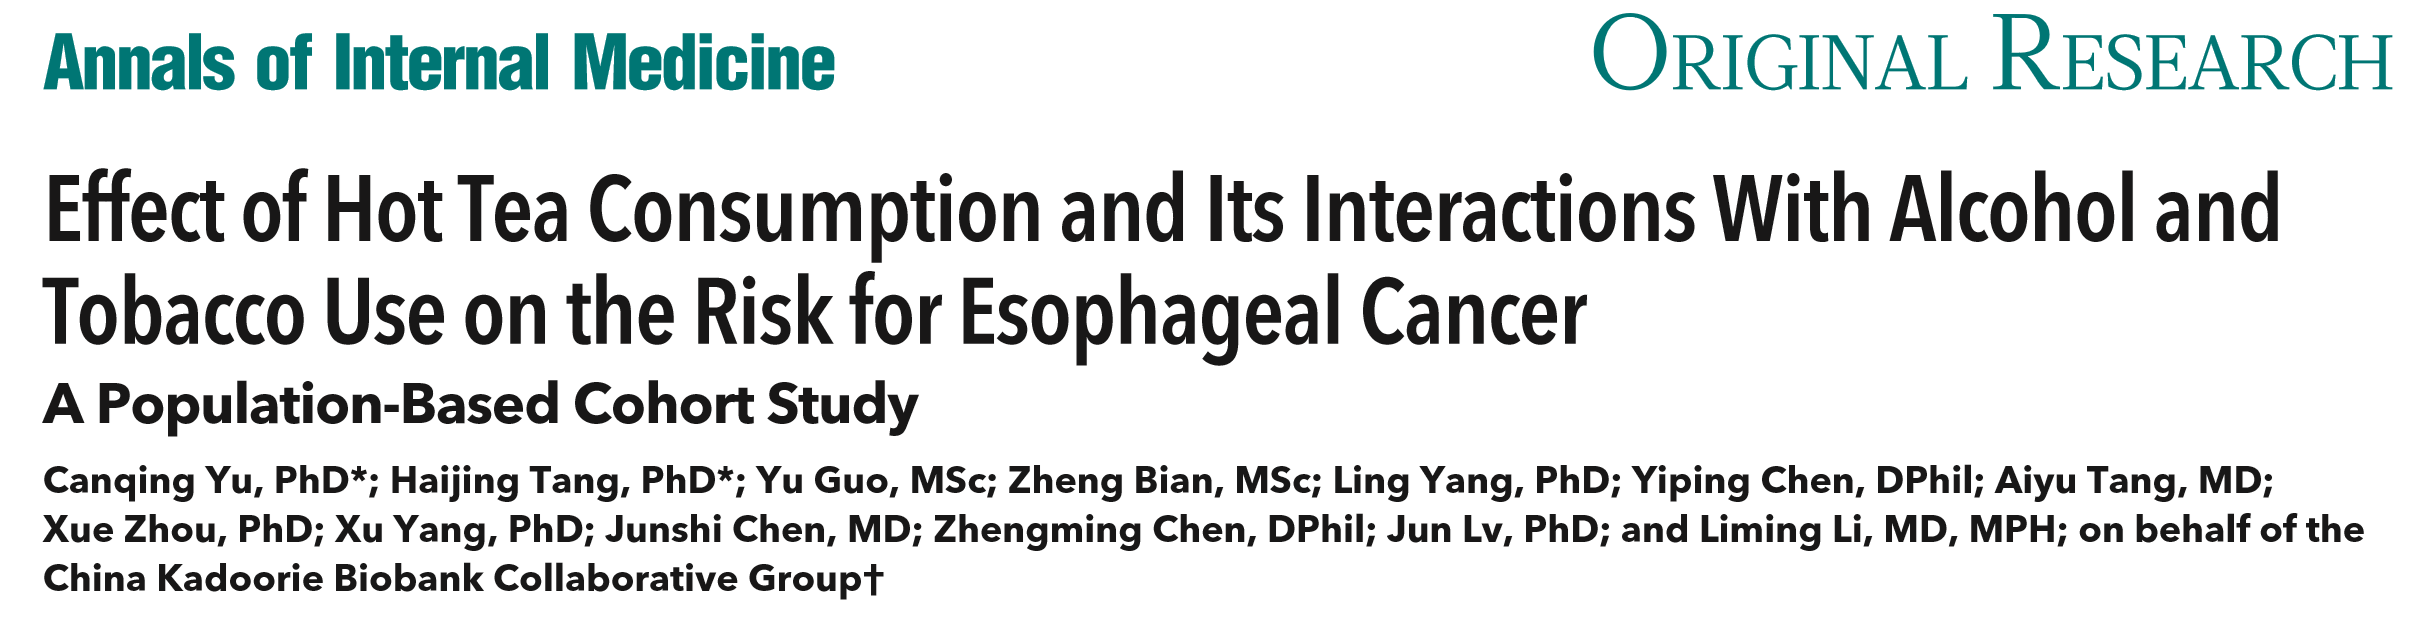 Effect of Hot Tea Consumption and Its Interactions With Alcohol and Tobacco use on the Risk for Esophageal Cancer